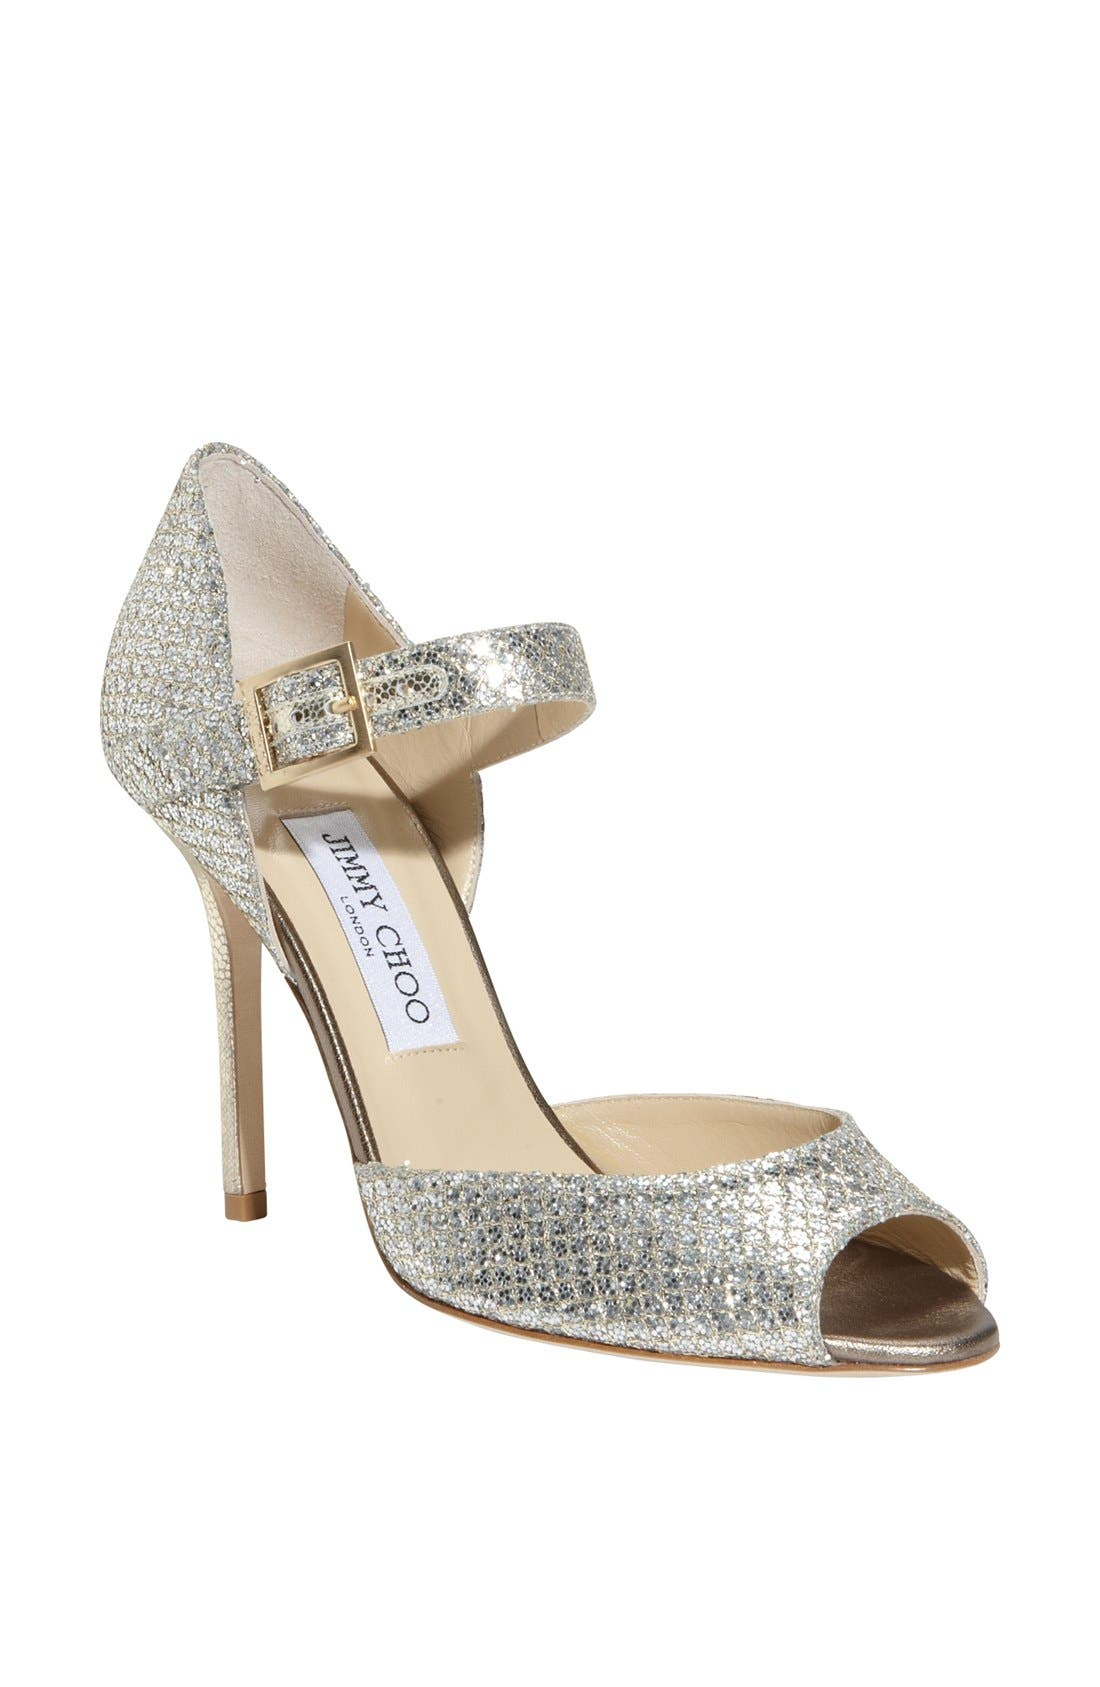 Main Image - Jimmy Choo 'Lace' Mary Jane Pump